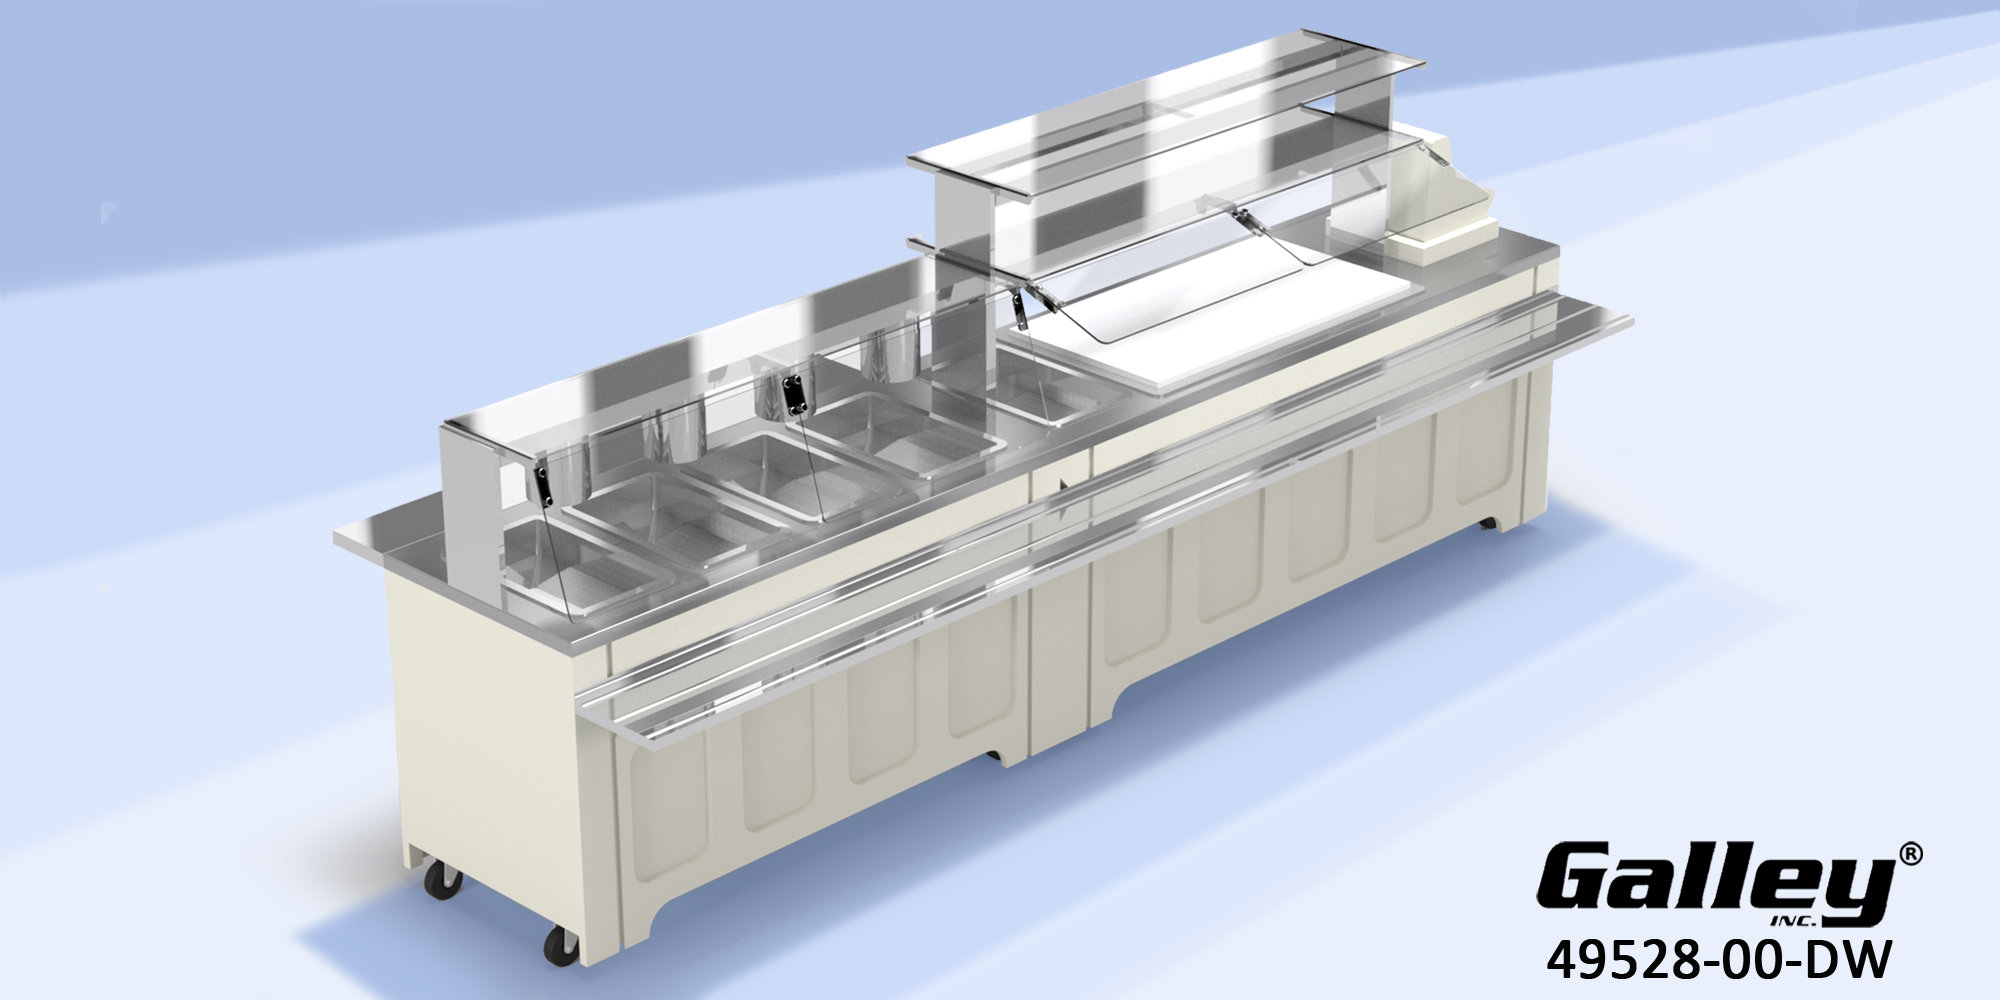 cafeteria layout in hospitals  cafeteria cafe design layout